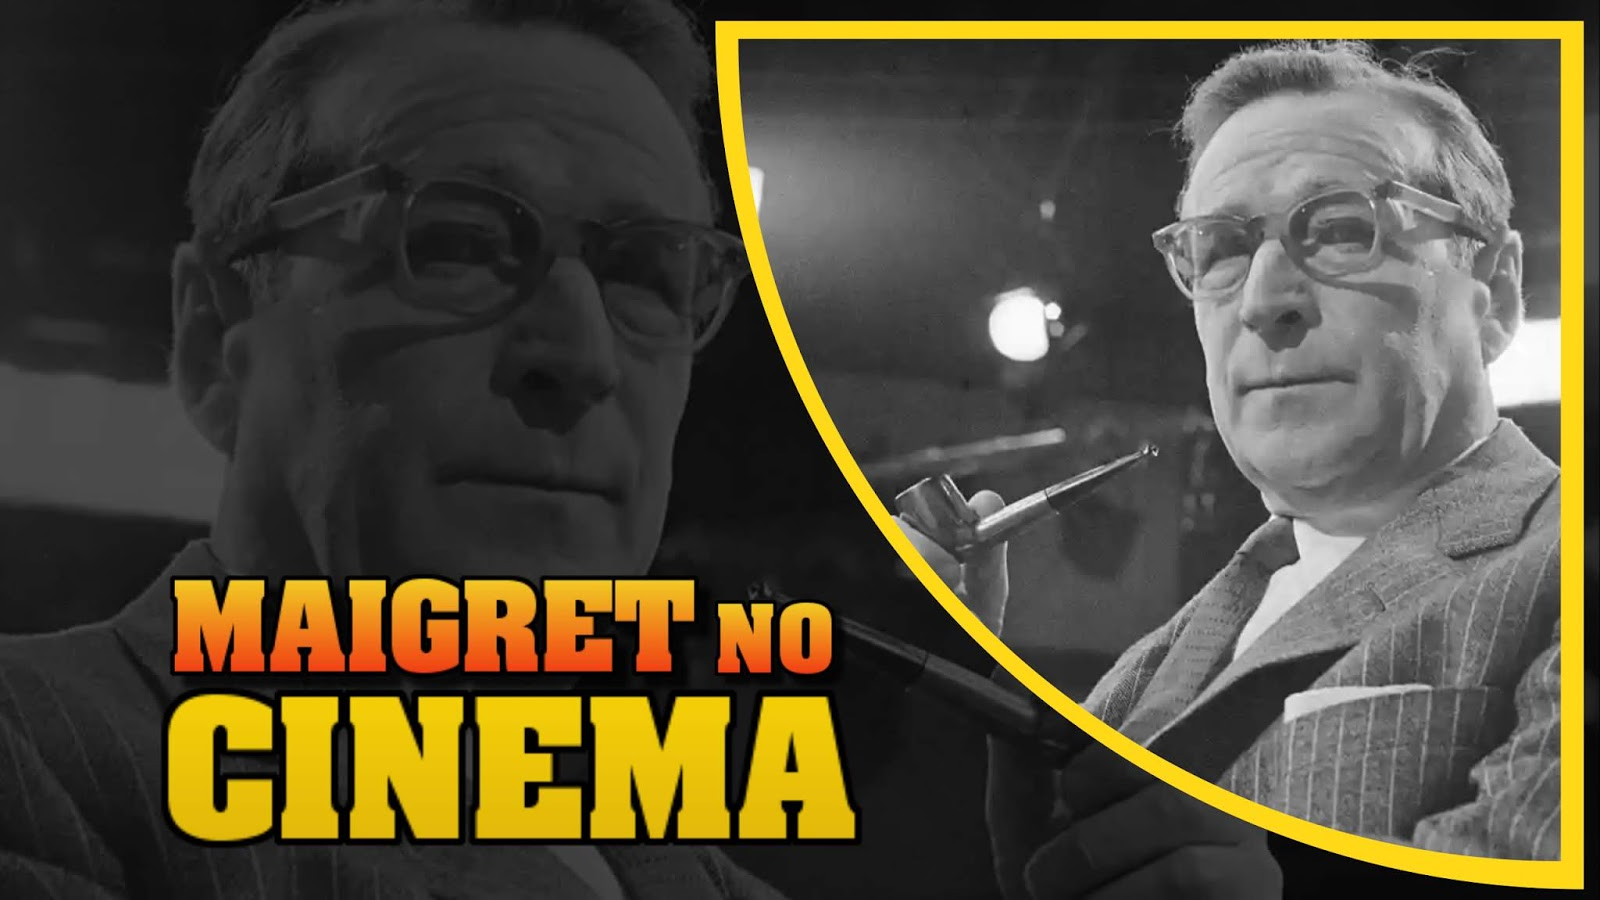 o-inspetor-maigret-no-cinema-e-tv